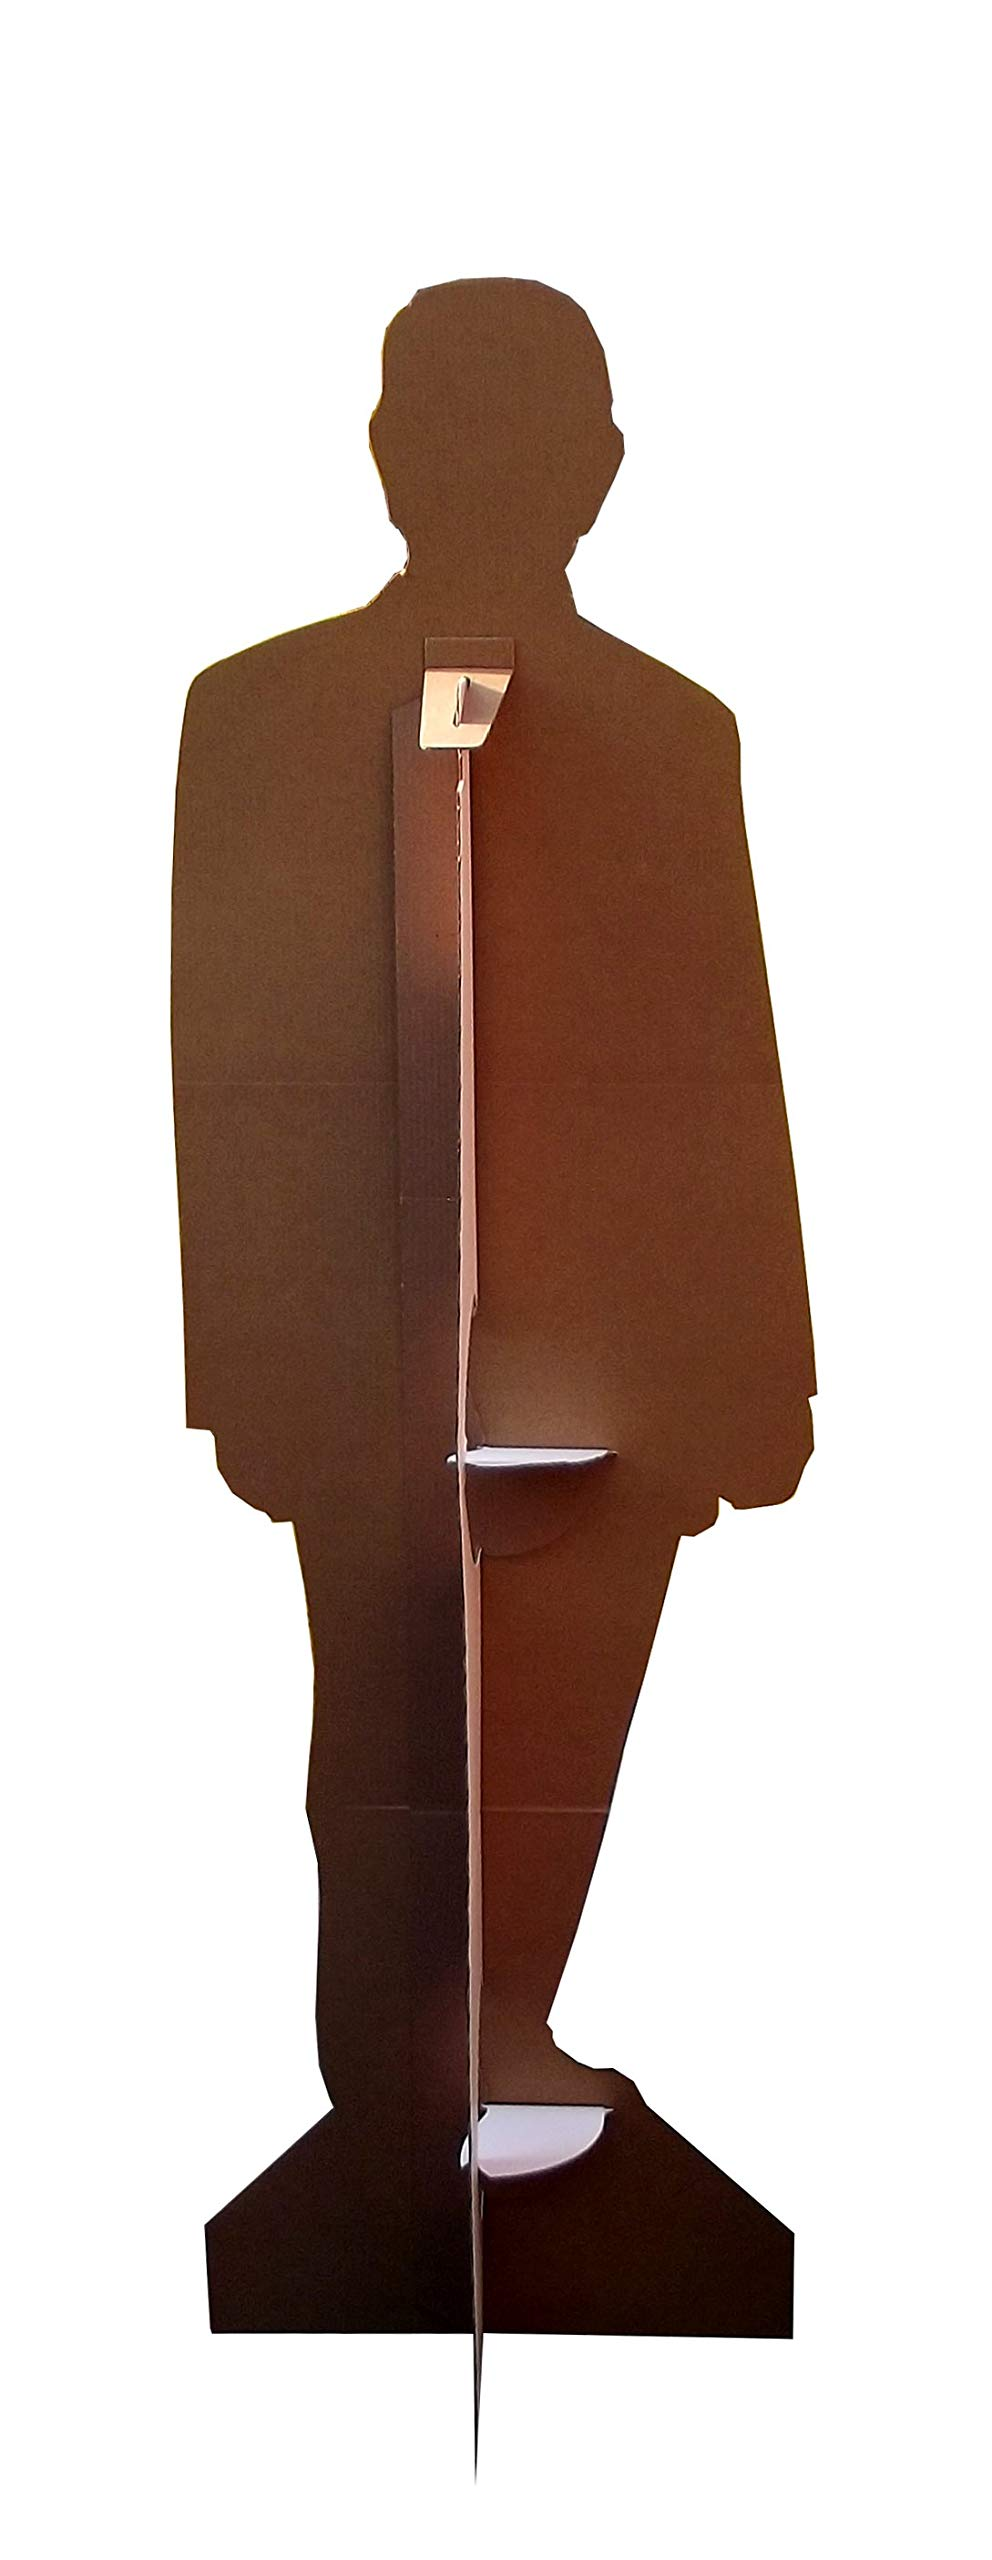 Aahs Engraving President Lyndon B Johnson Life Size Carboard Stand Up 6 feet